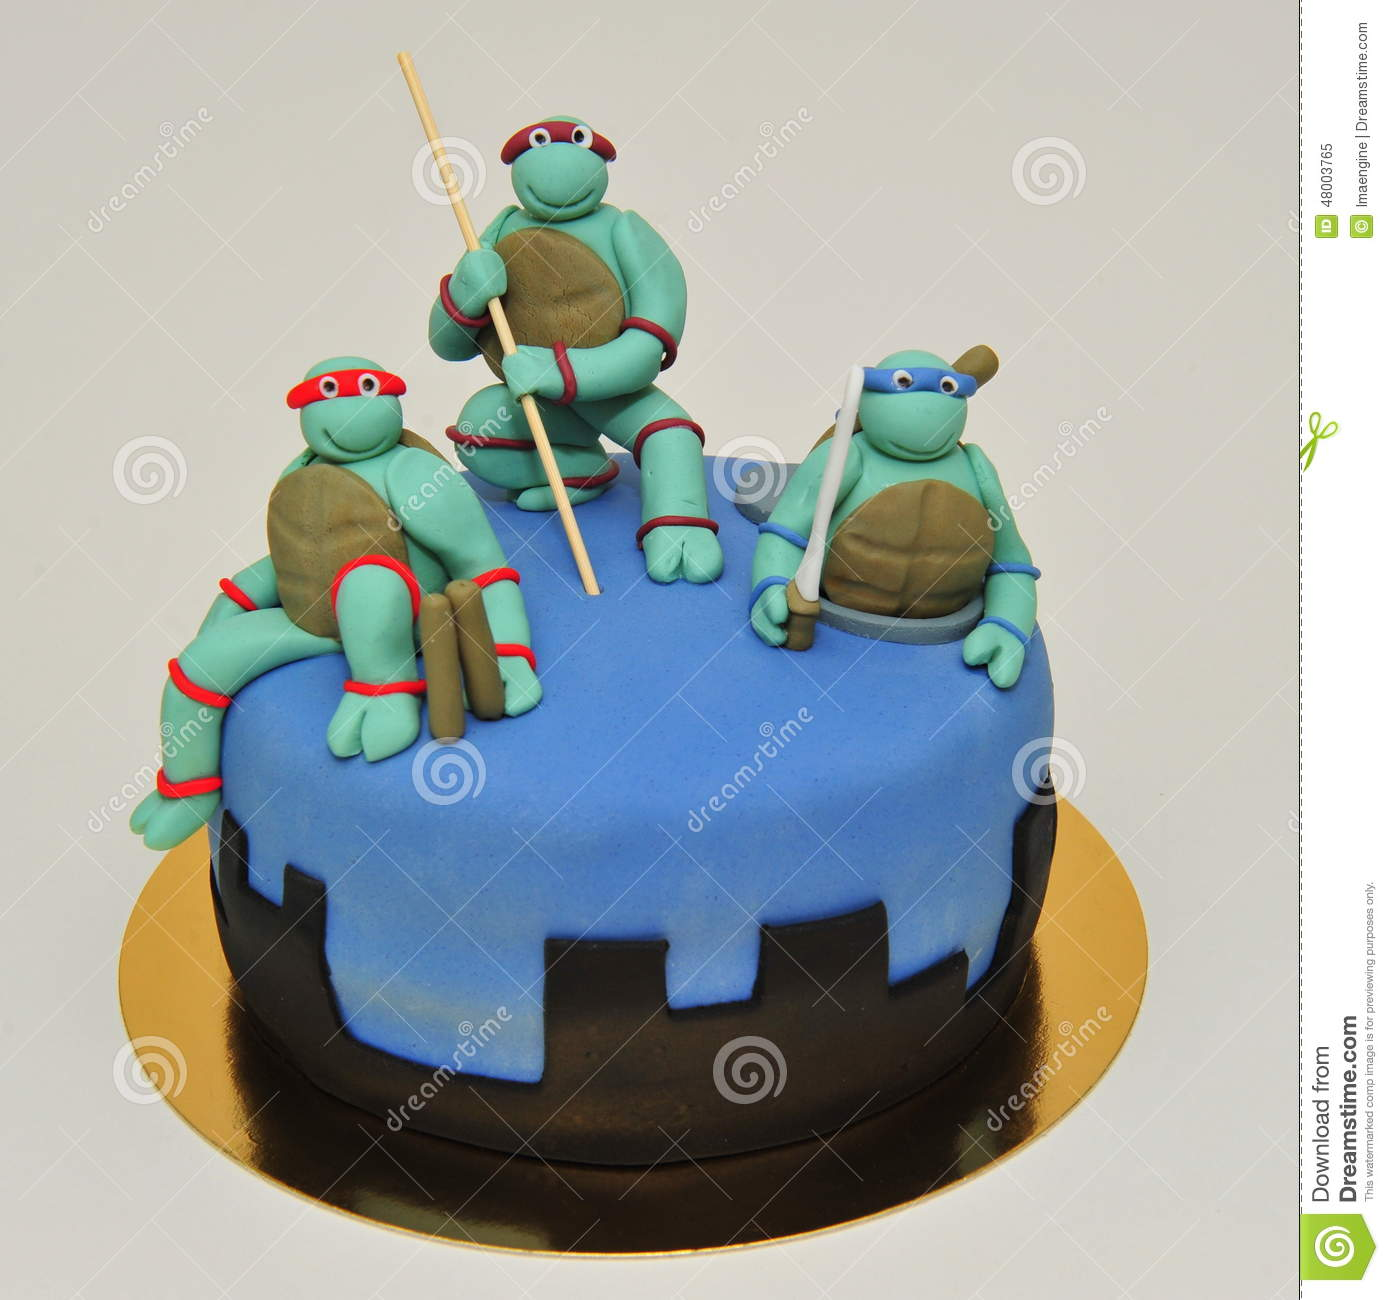 Teenage Ninja Mutant Turtles Cake Editorial Image Image